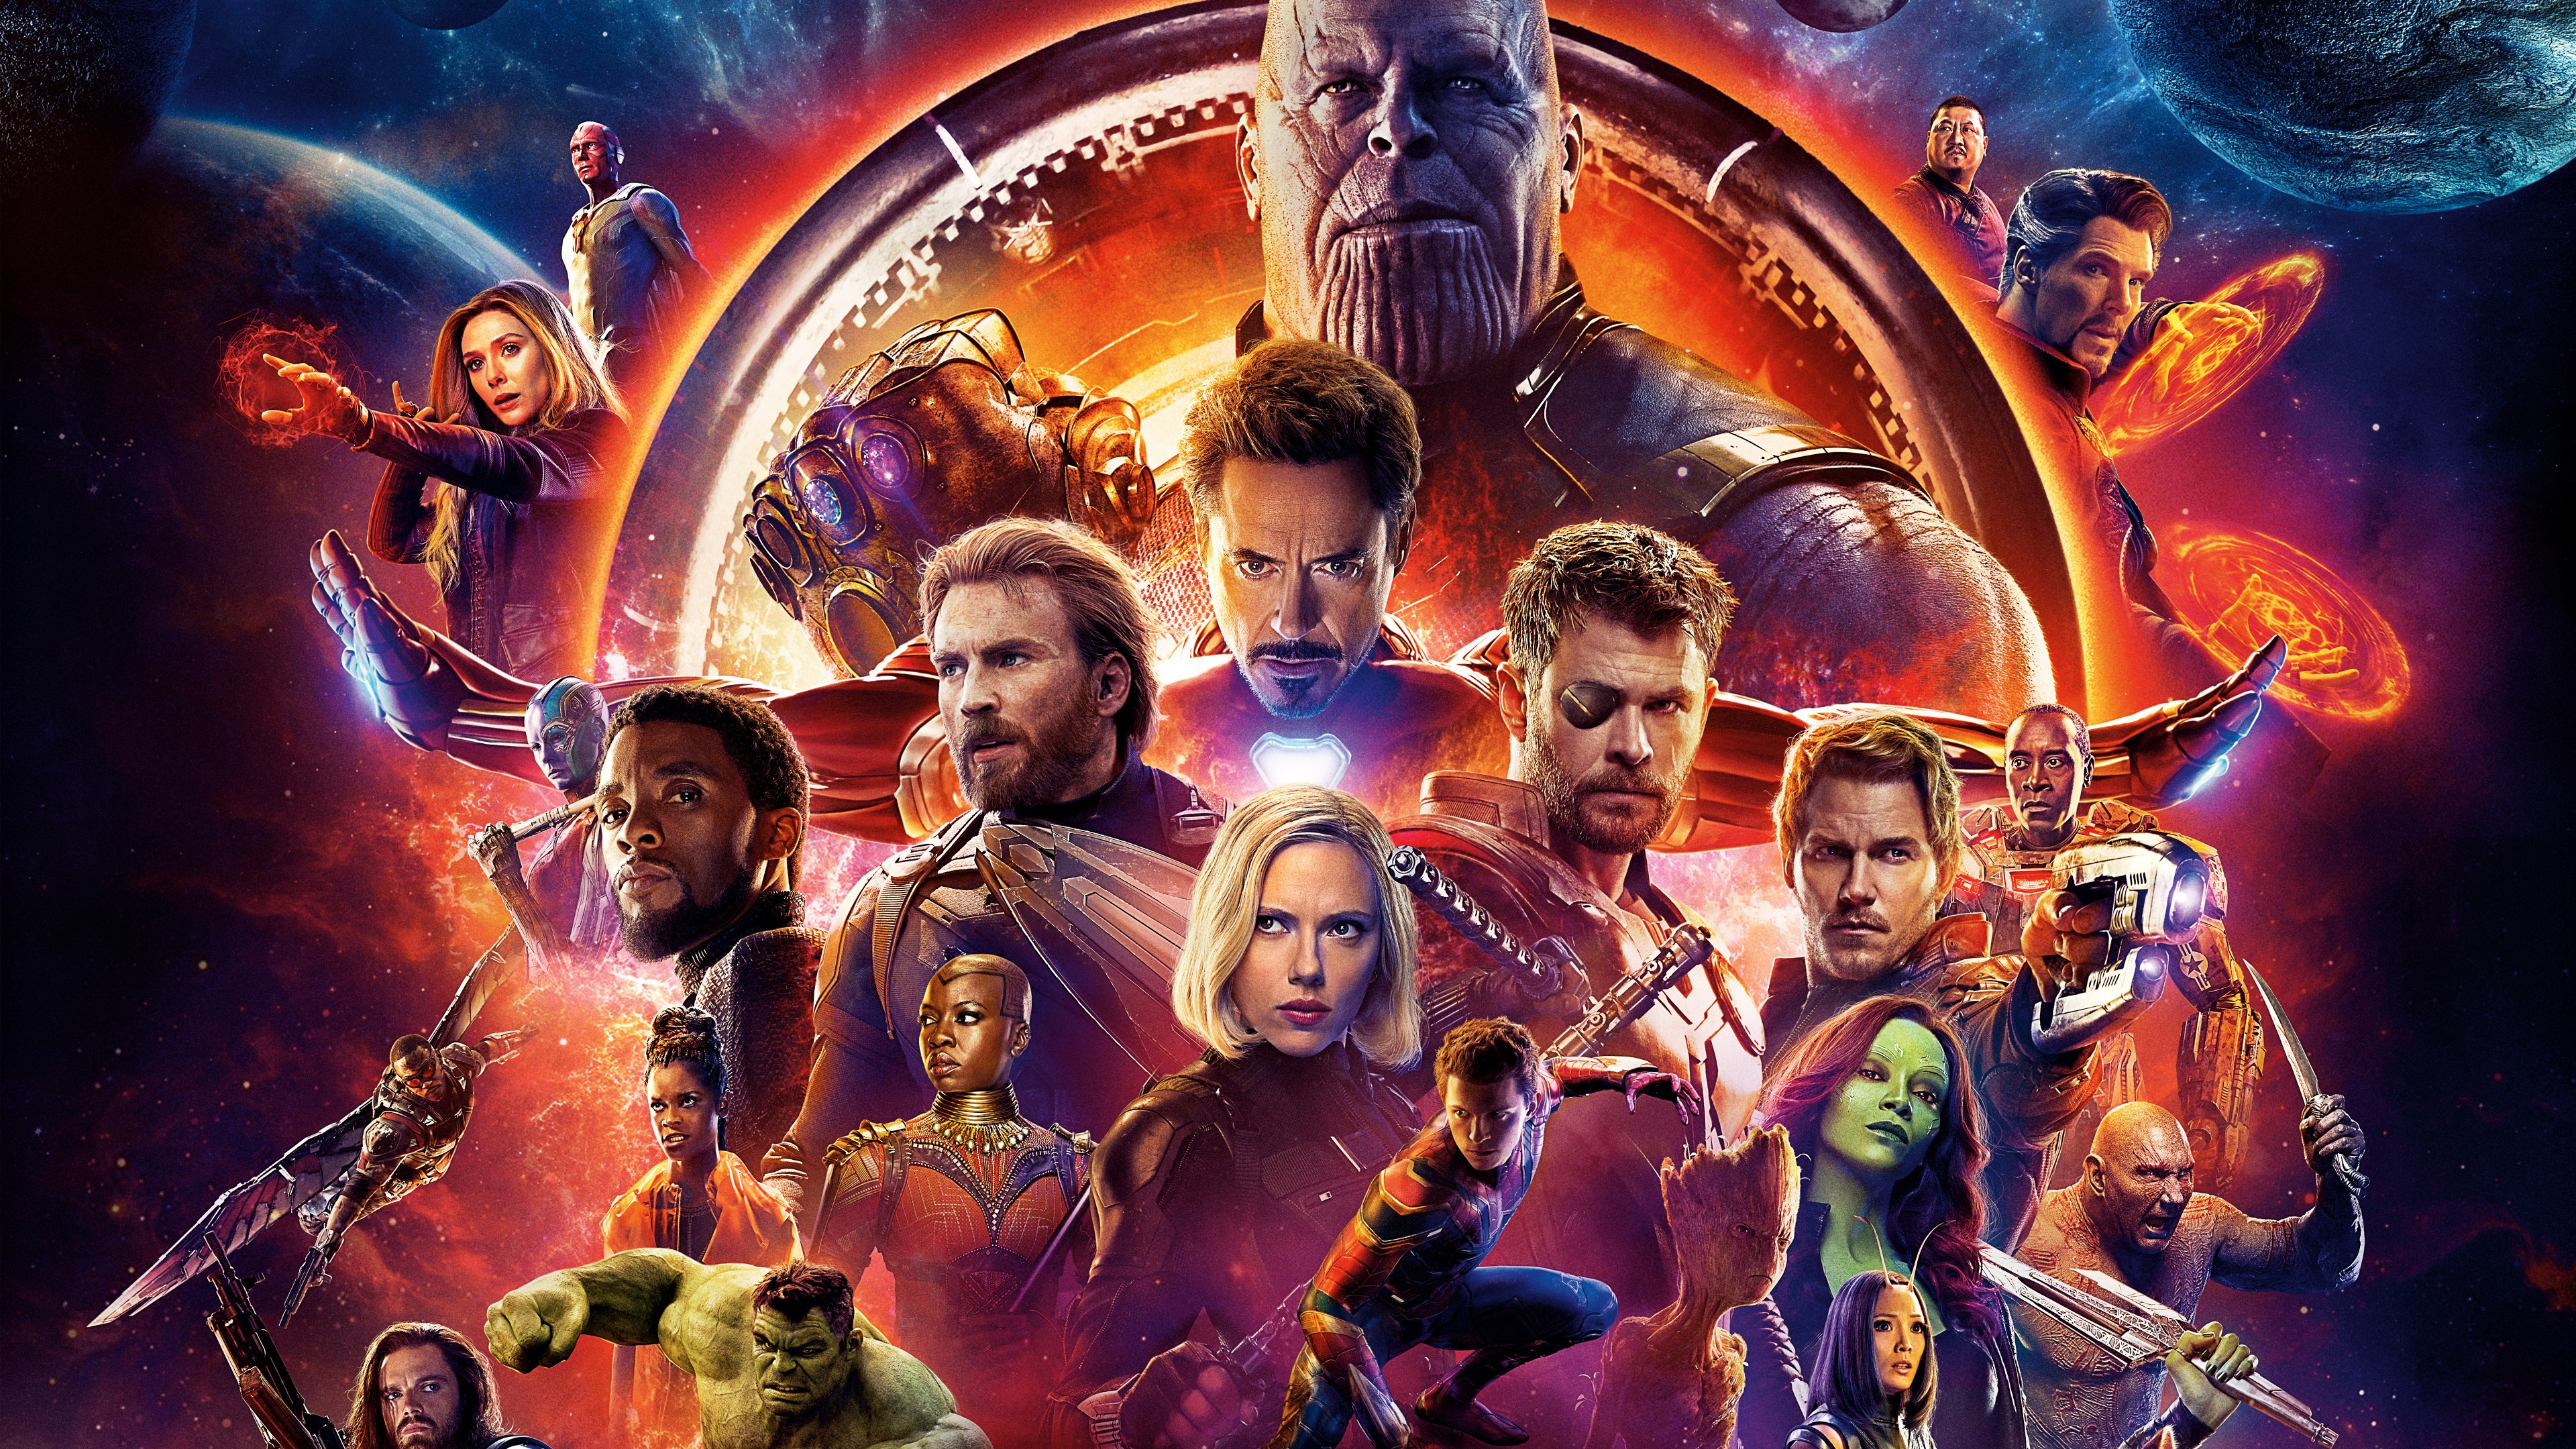 Avengers Infinity War Superhero and Villain 4K Wallpaper-3840x2160